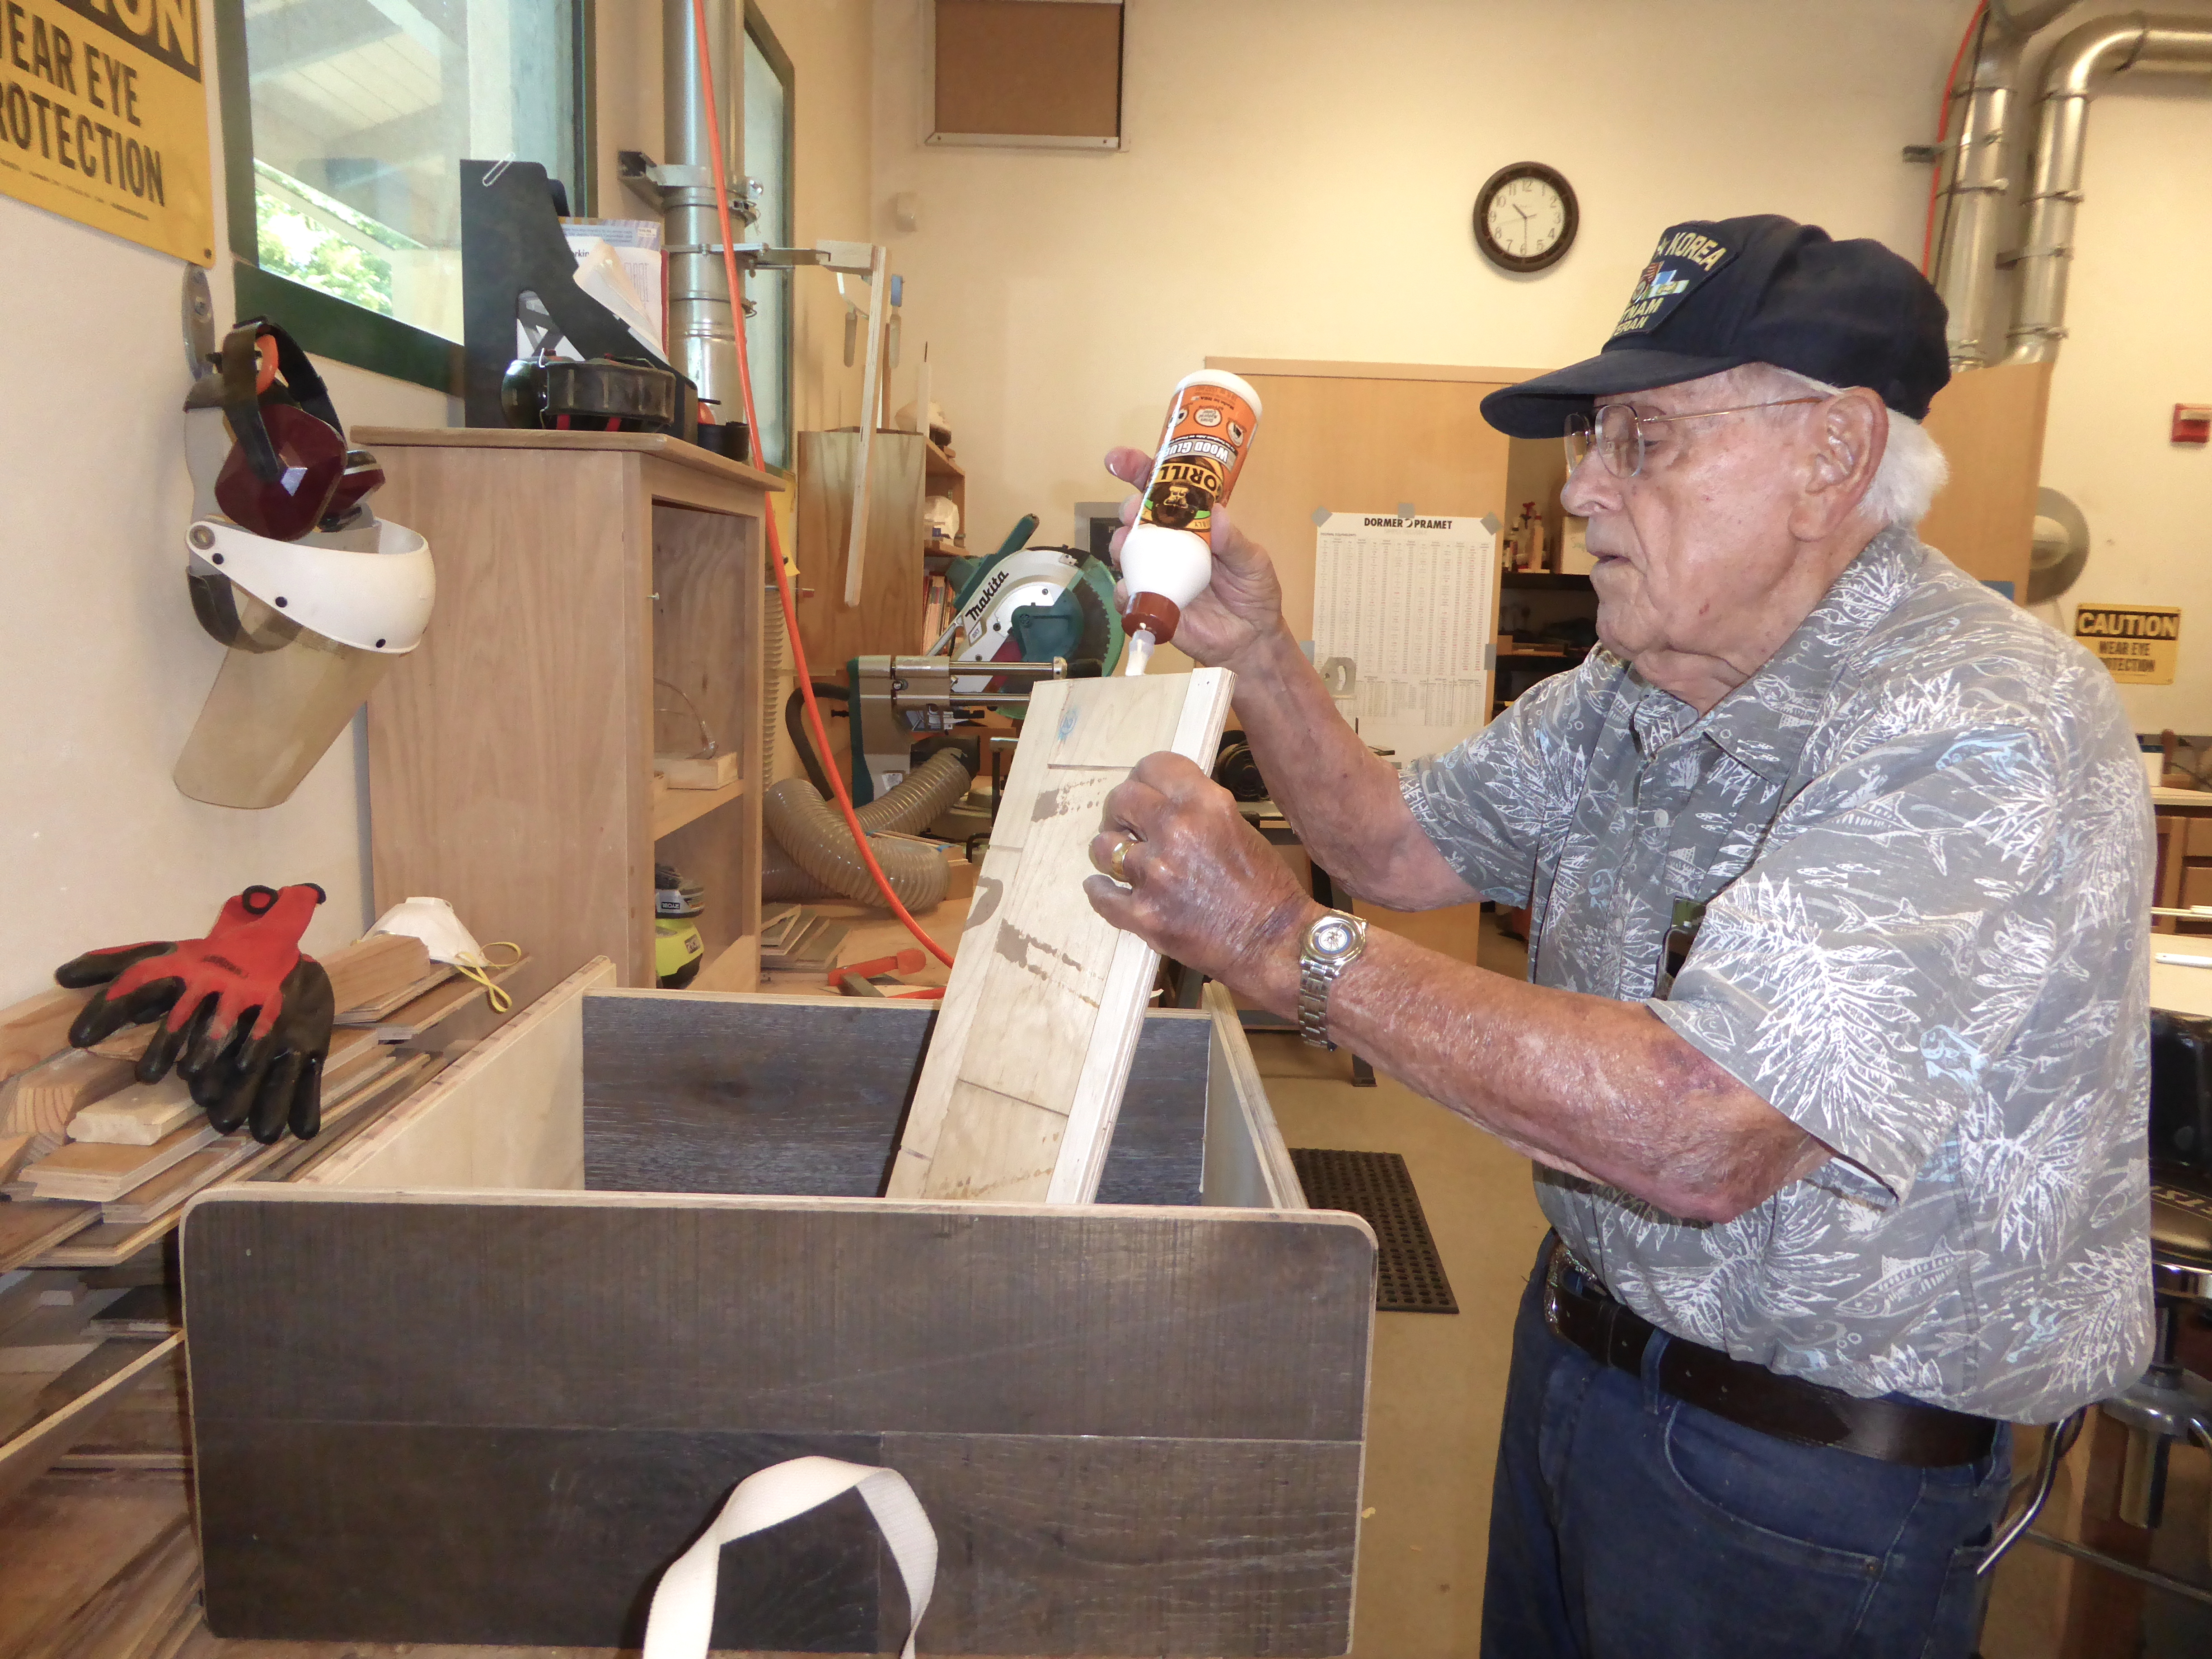 Santa Clara Senior Joe Aboussleman S Woodworking Projects Reflect A Lifetime Of Resourcefulness The Silicon Valley Voice